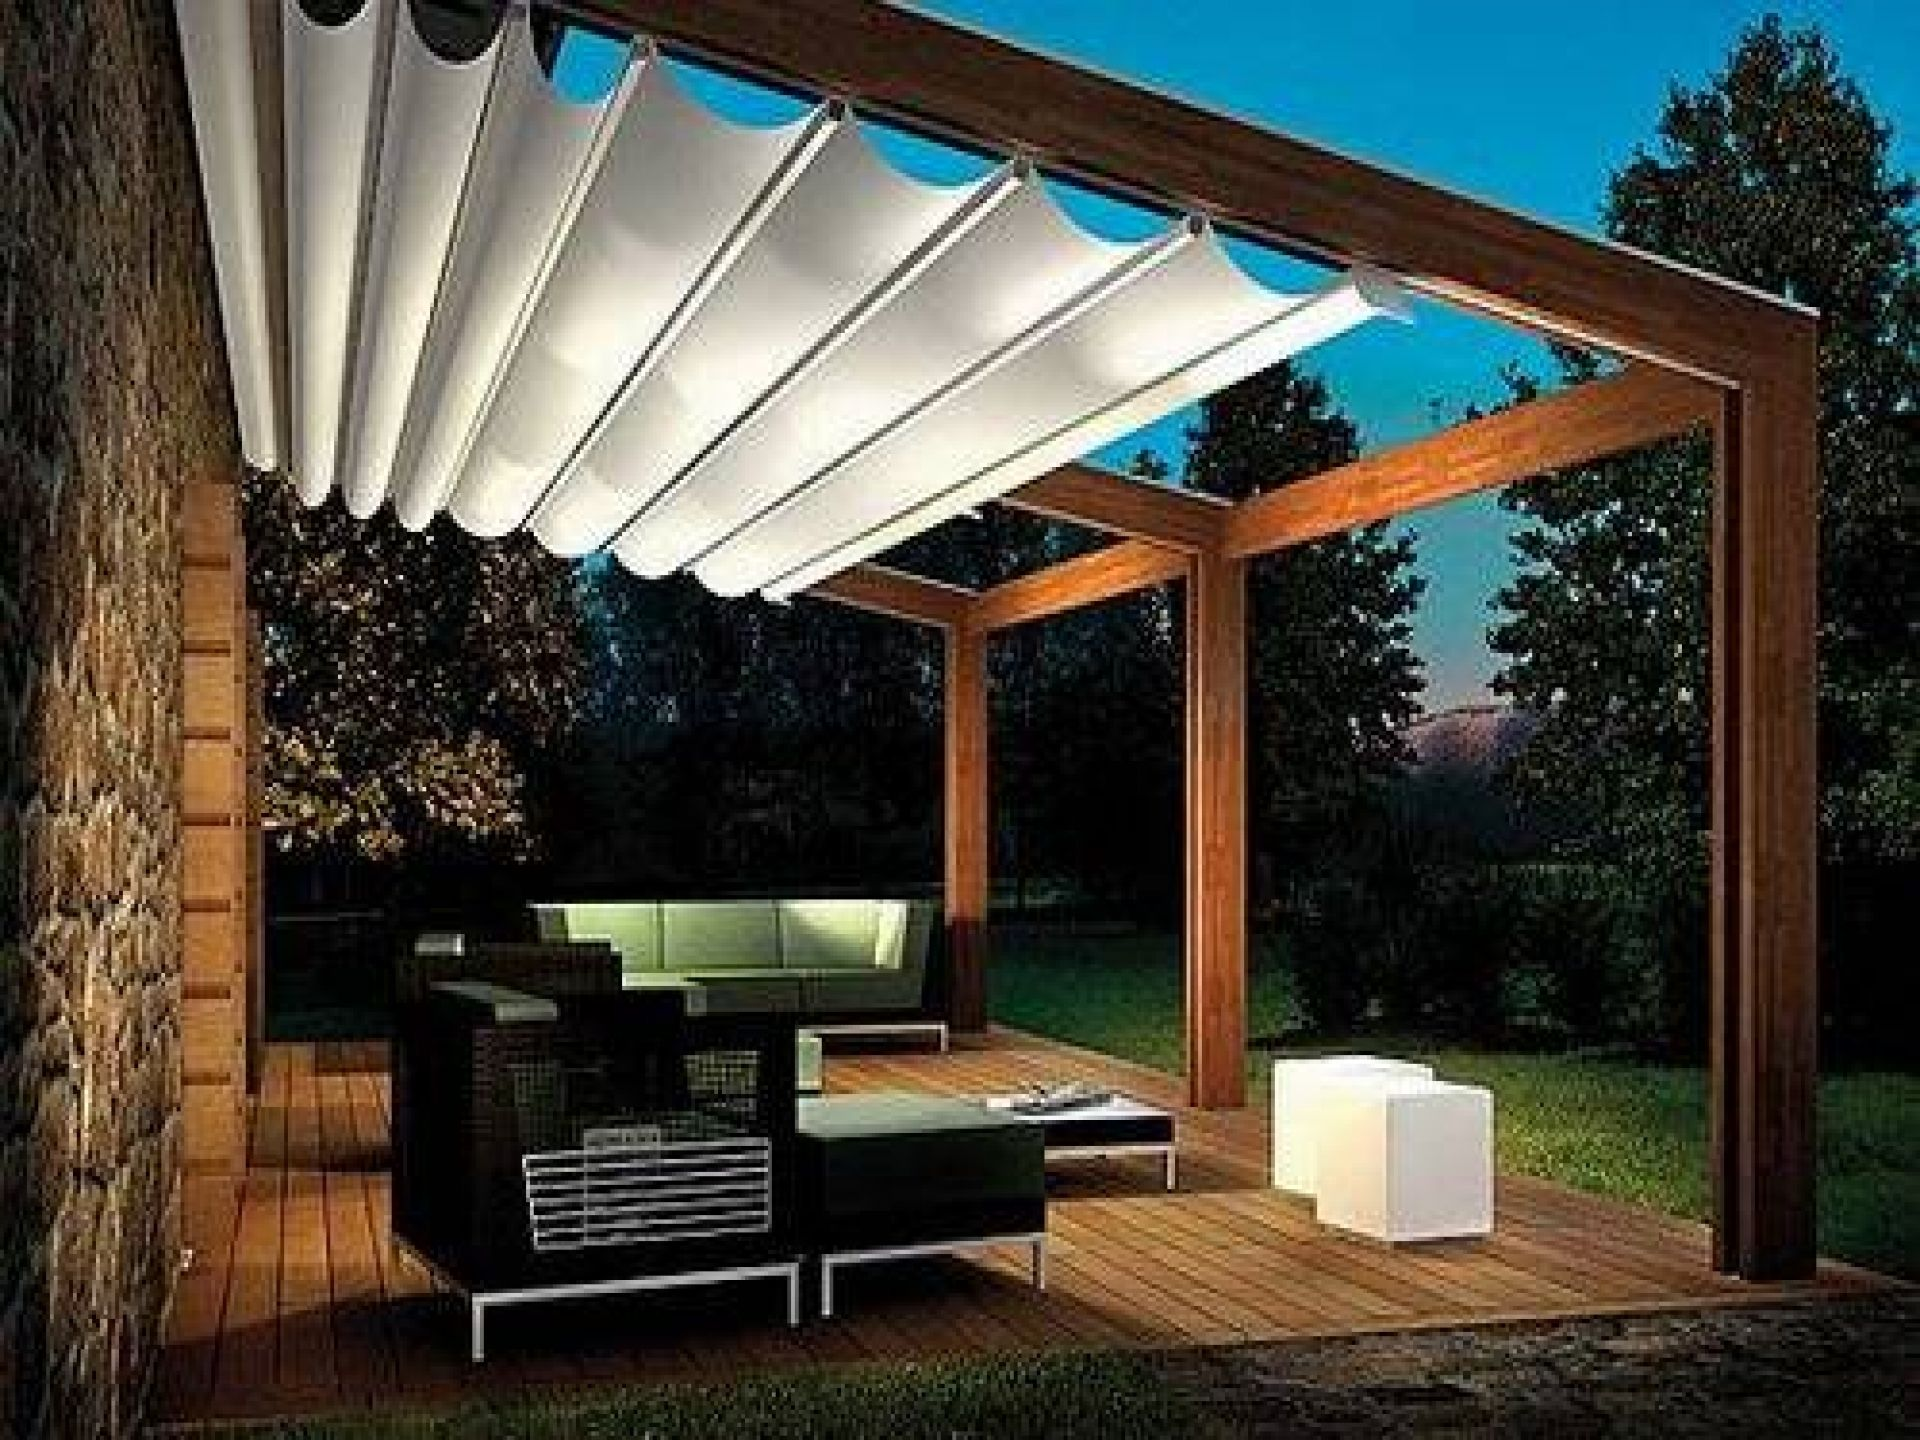 Cheap Patio Cover Ideas Backyard Deck Wooden Lanape